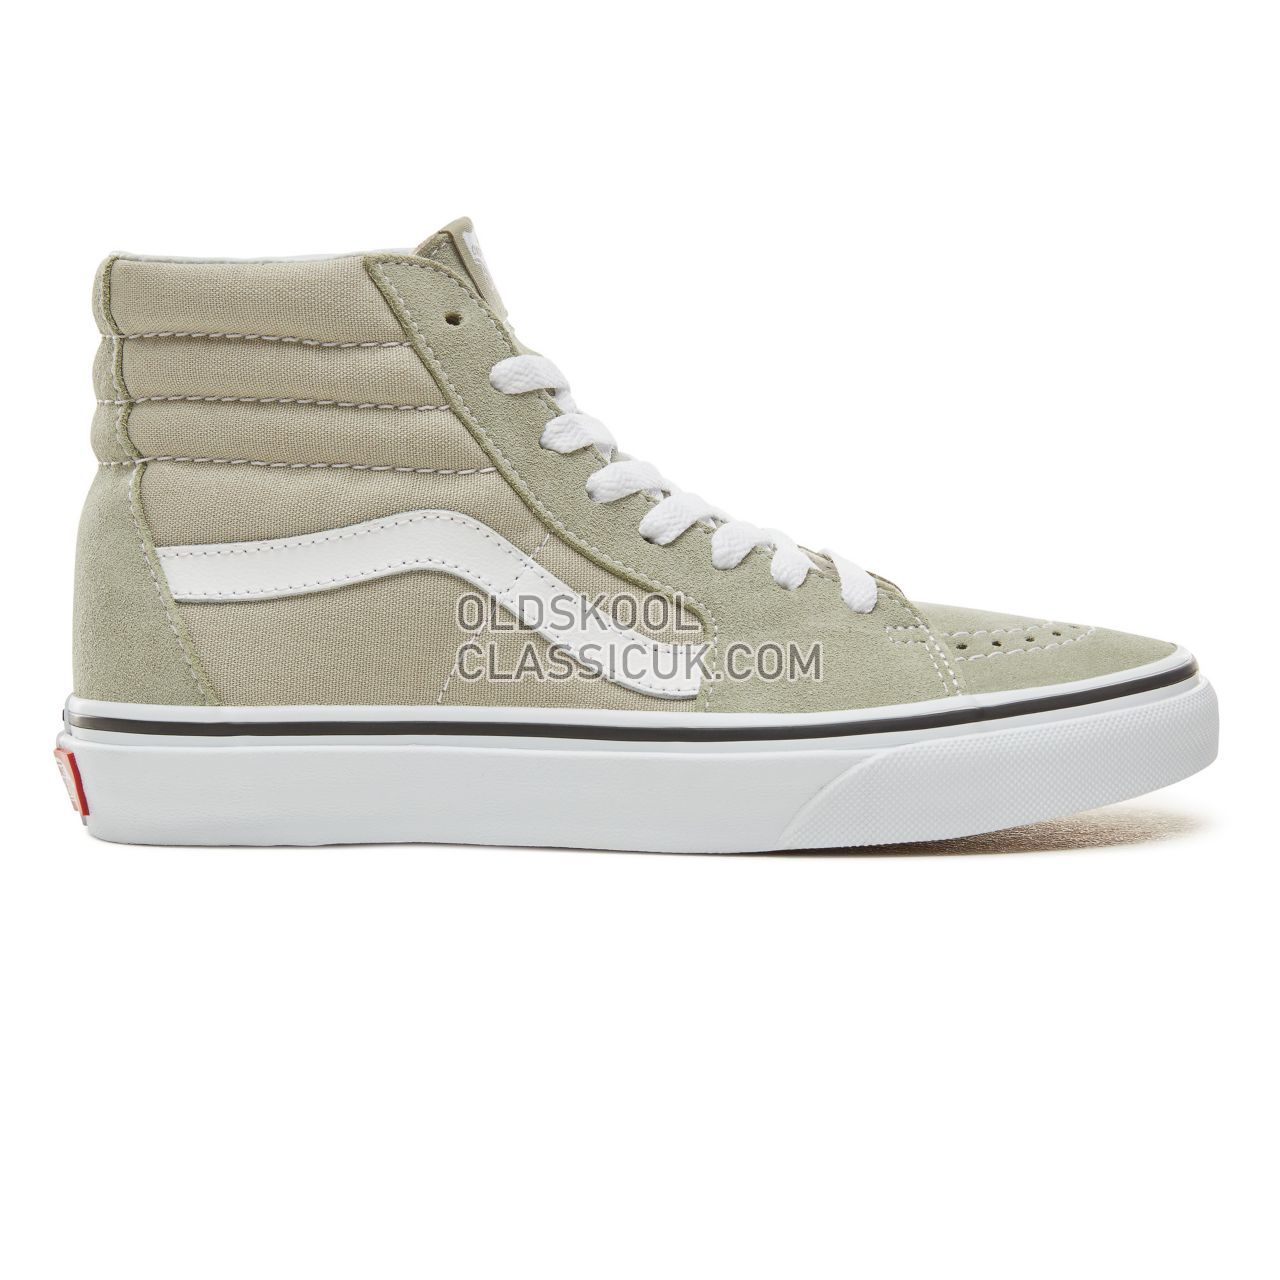 Vans Color Theory Sk8-Hi Sneakers (Unisex) Mens Desert Sage/True White VA38GEU62 Shoes